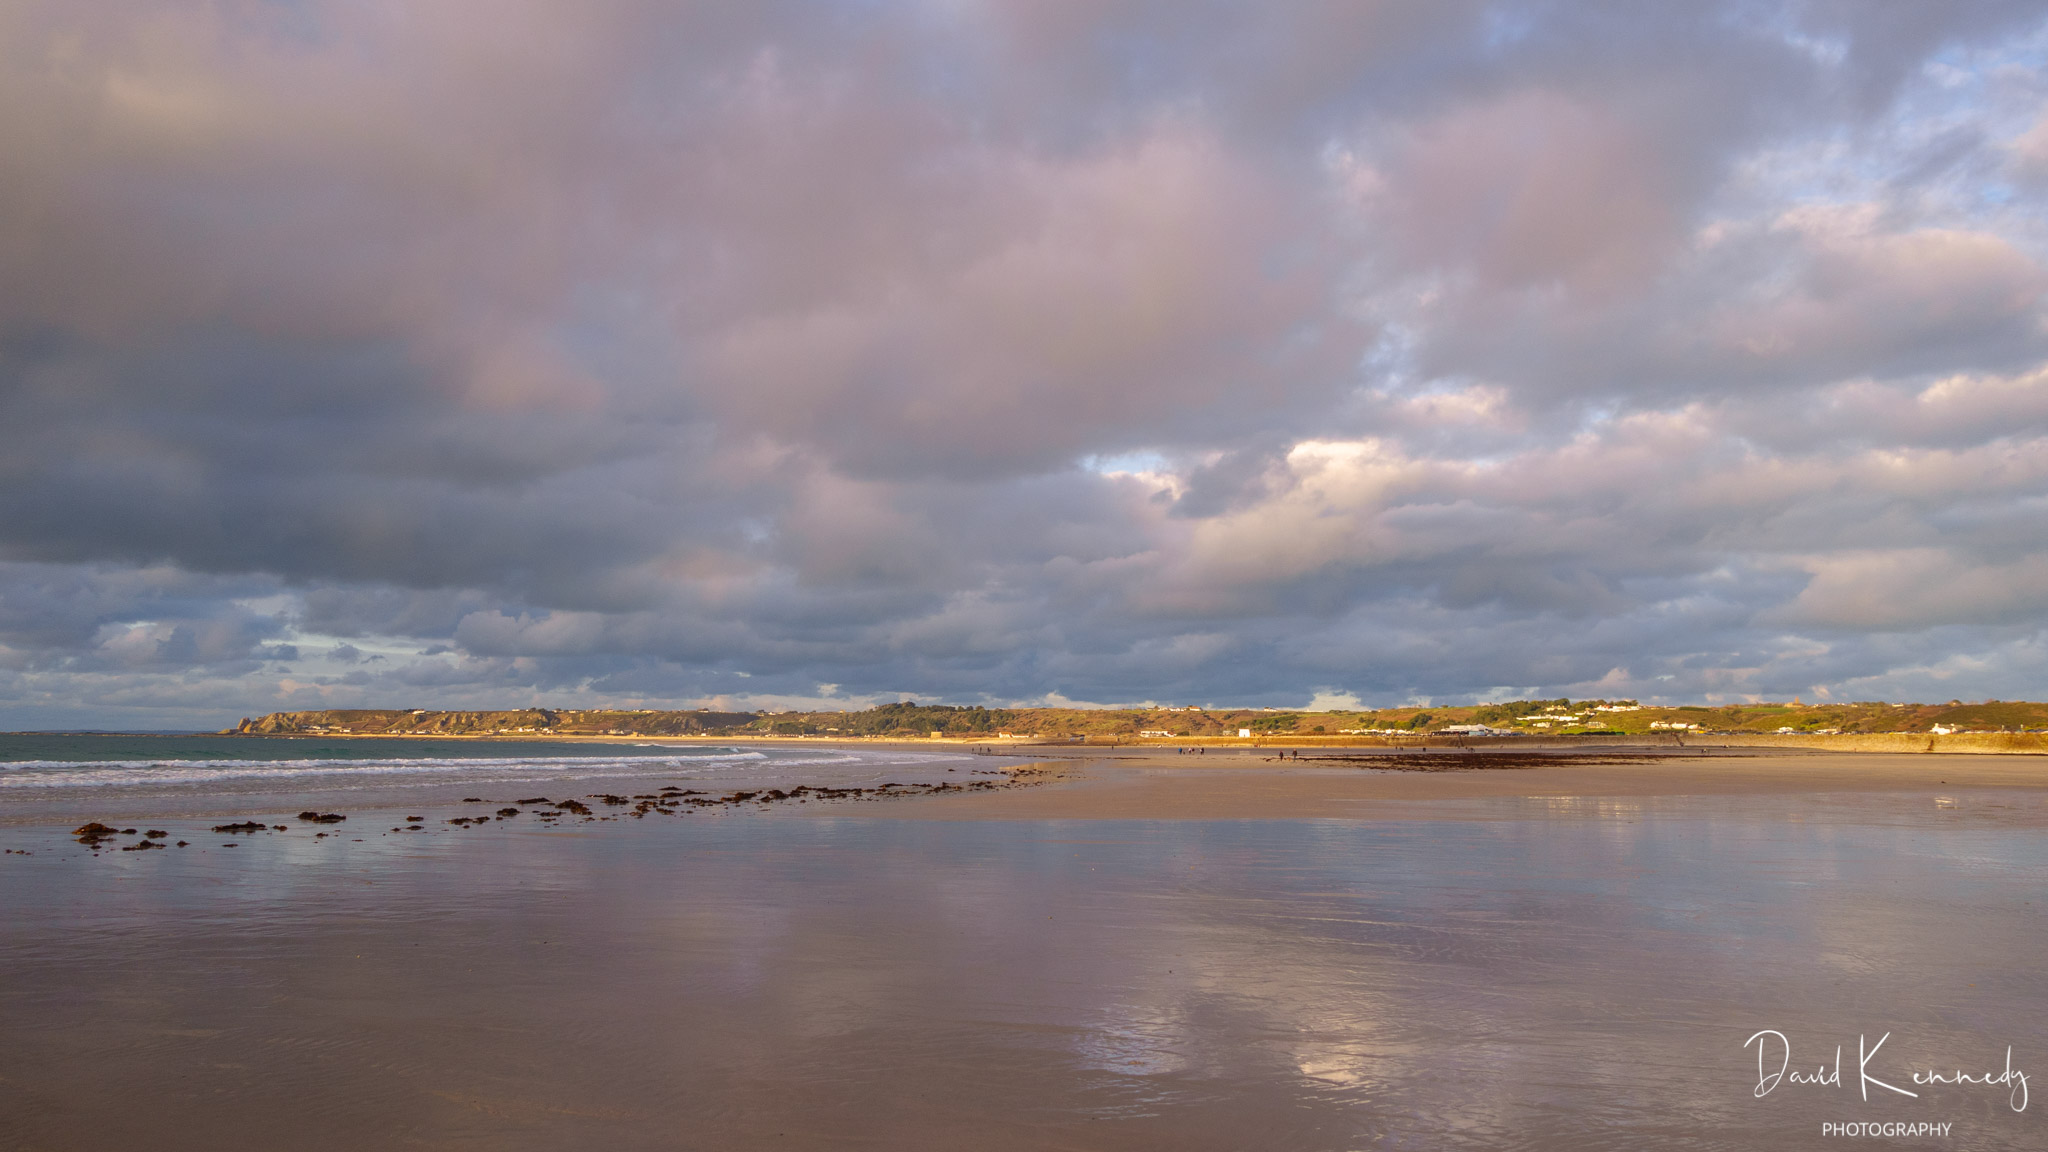 A wide view of St Ouen's beach looking north with the cloudy sky, tinged with orange, reflected on the wet sand